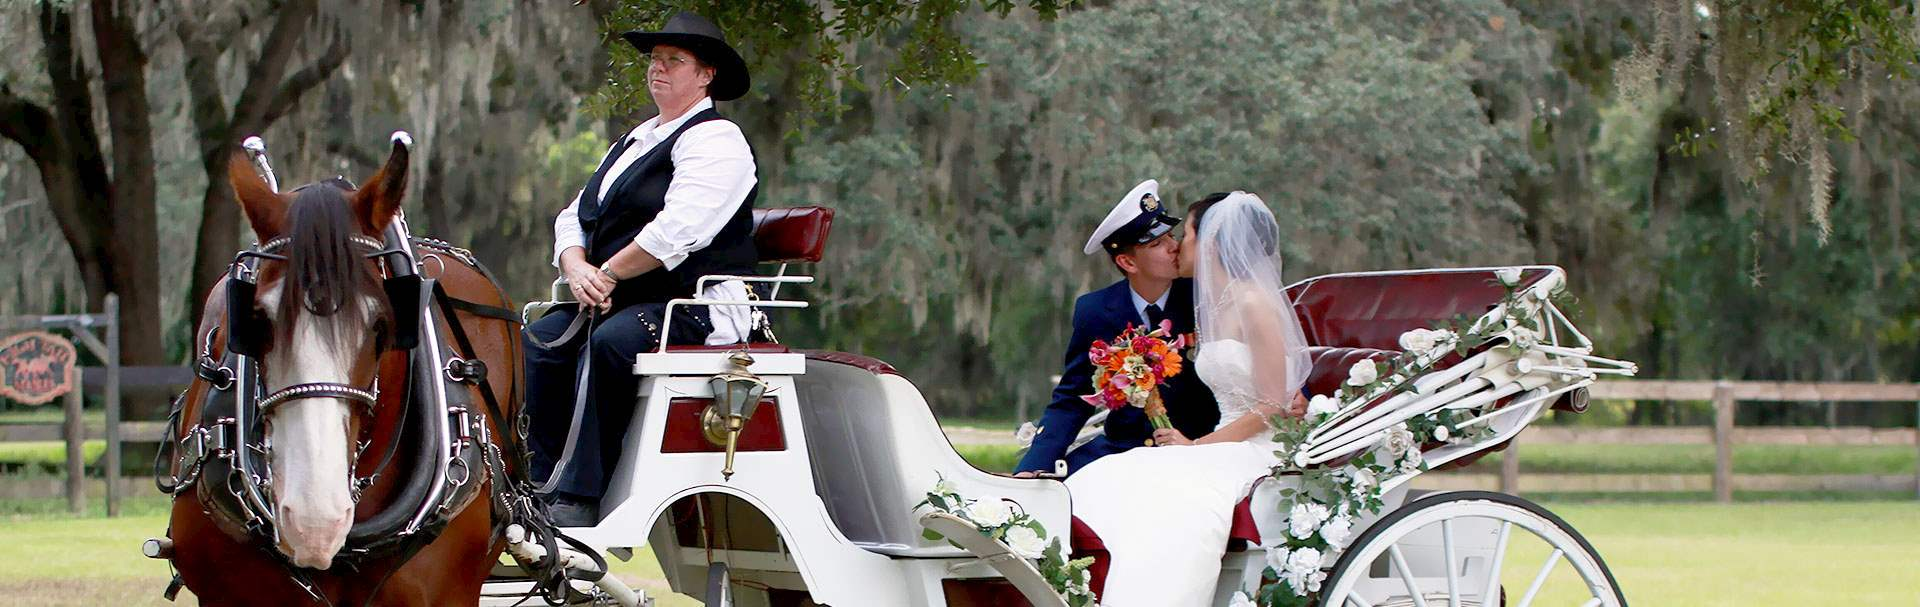 Wedding Services in Hilton Ocala Hotel